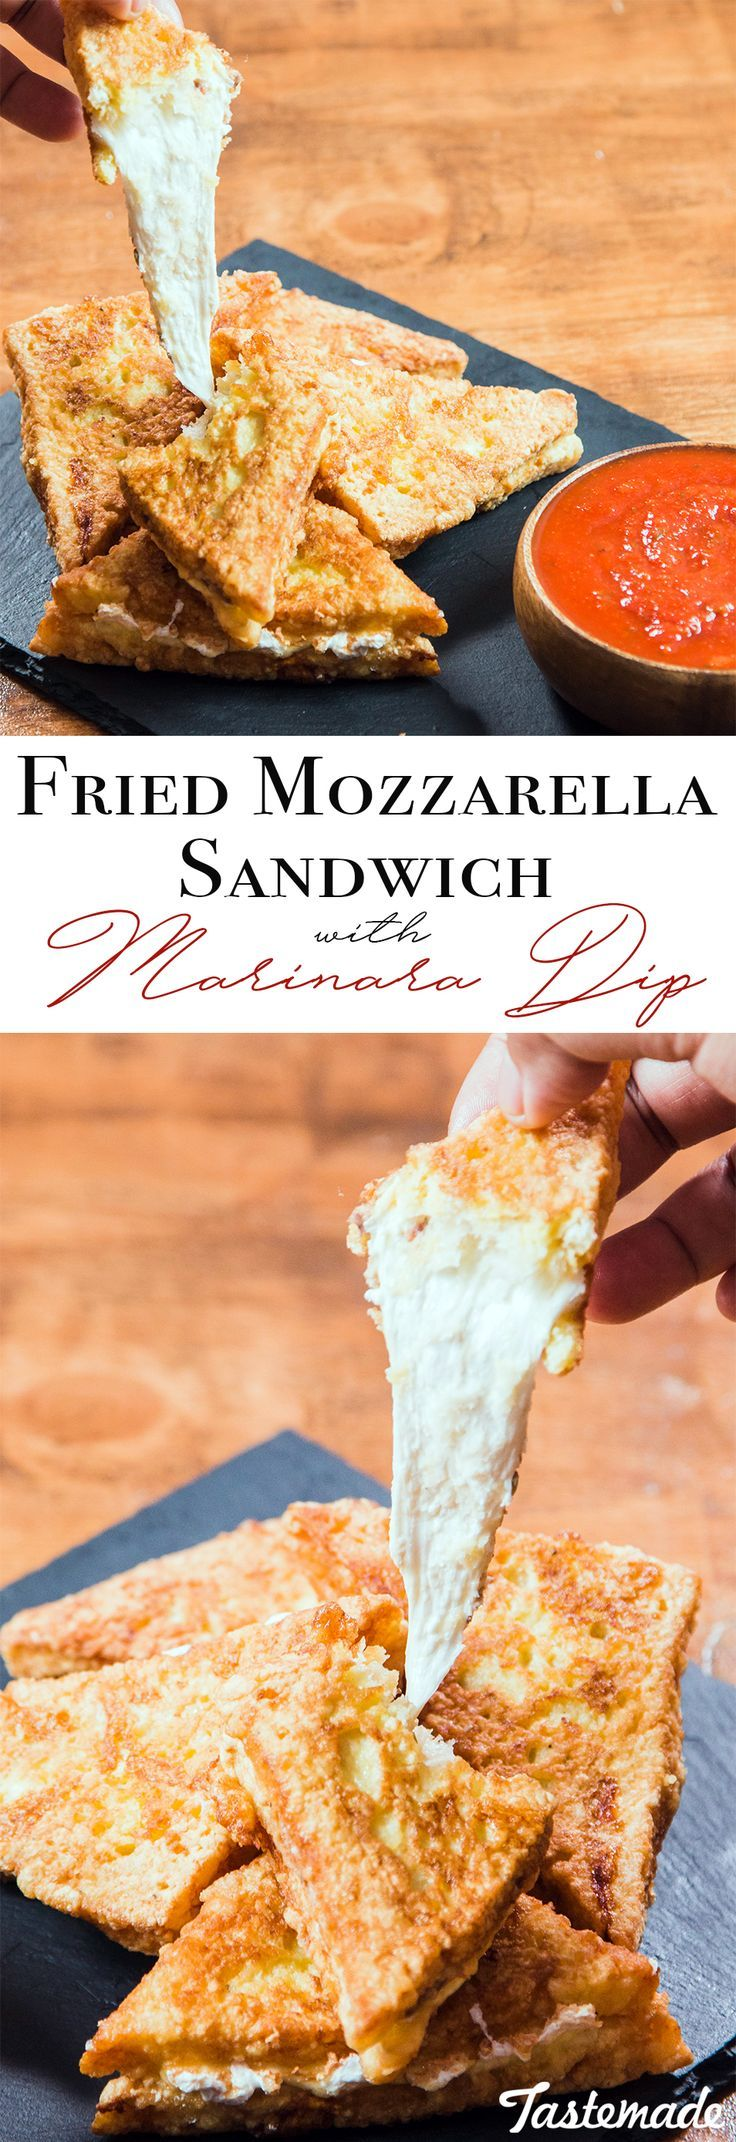 This cheesy fried sandwich is the delicious love child of mozzarella sticks and grilled cheese.